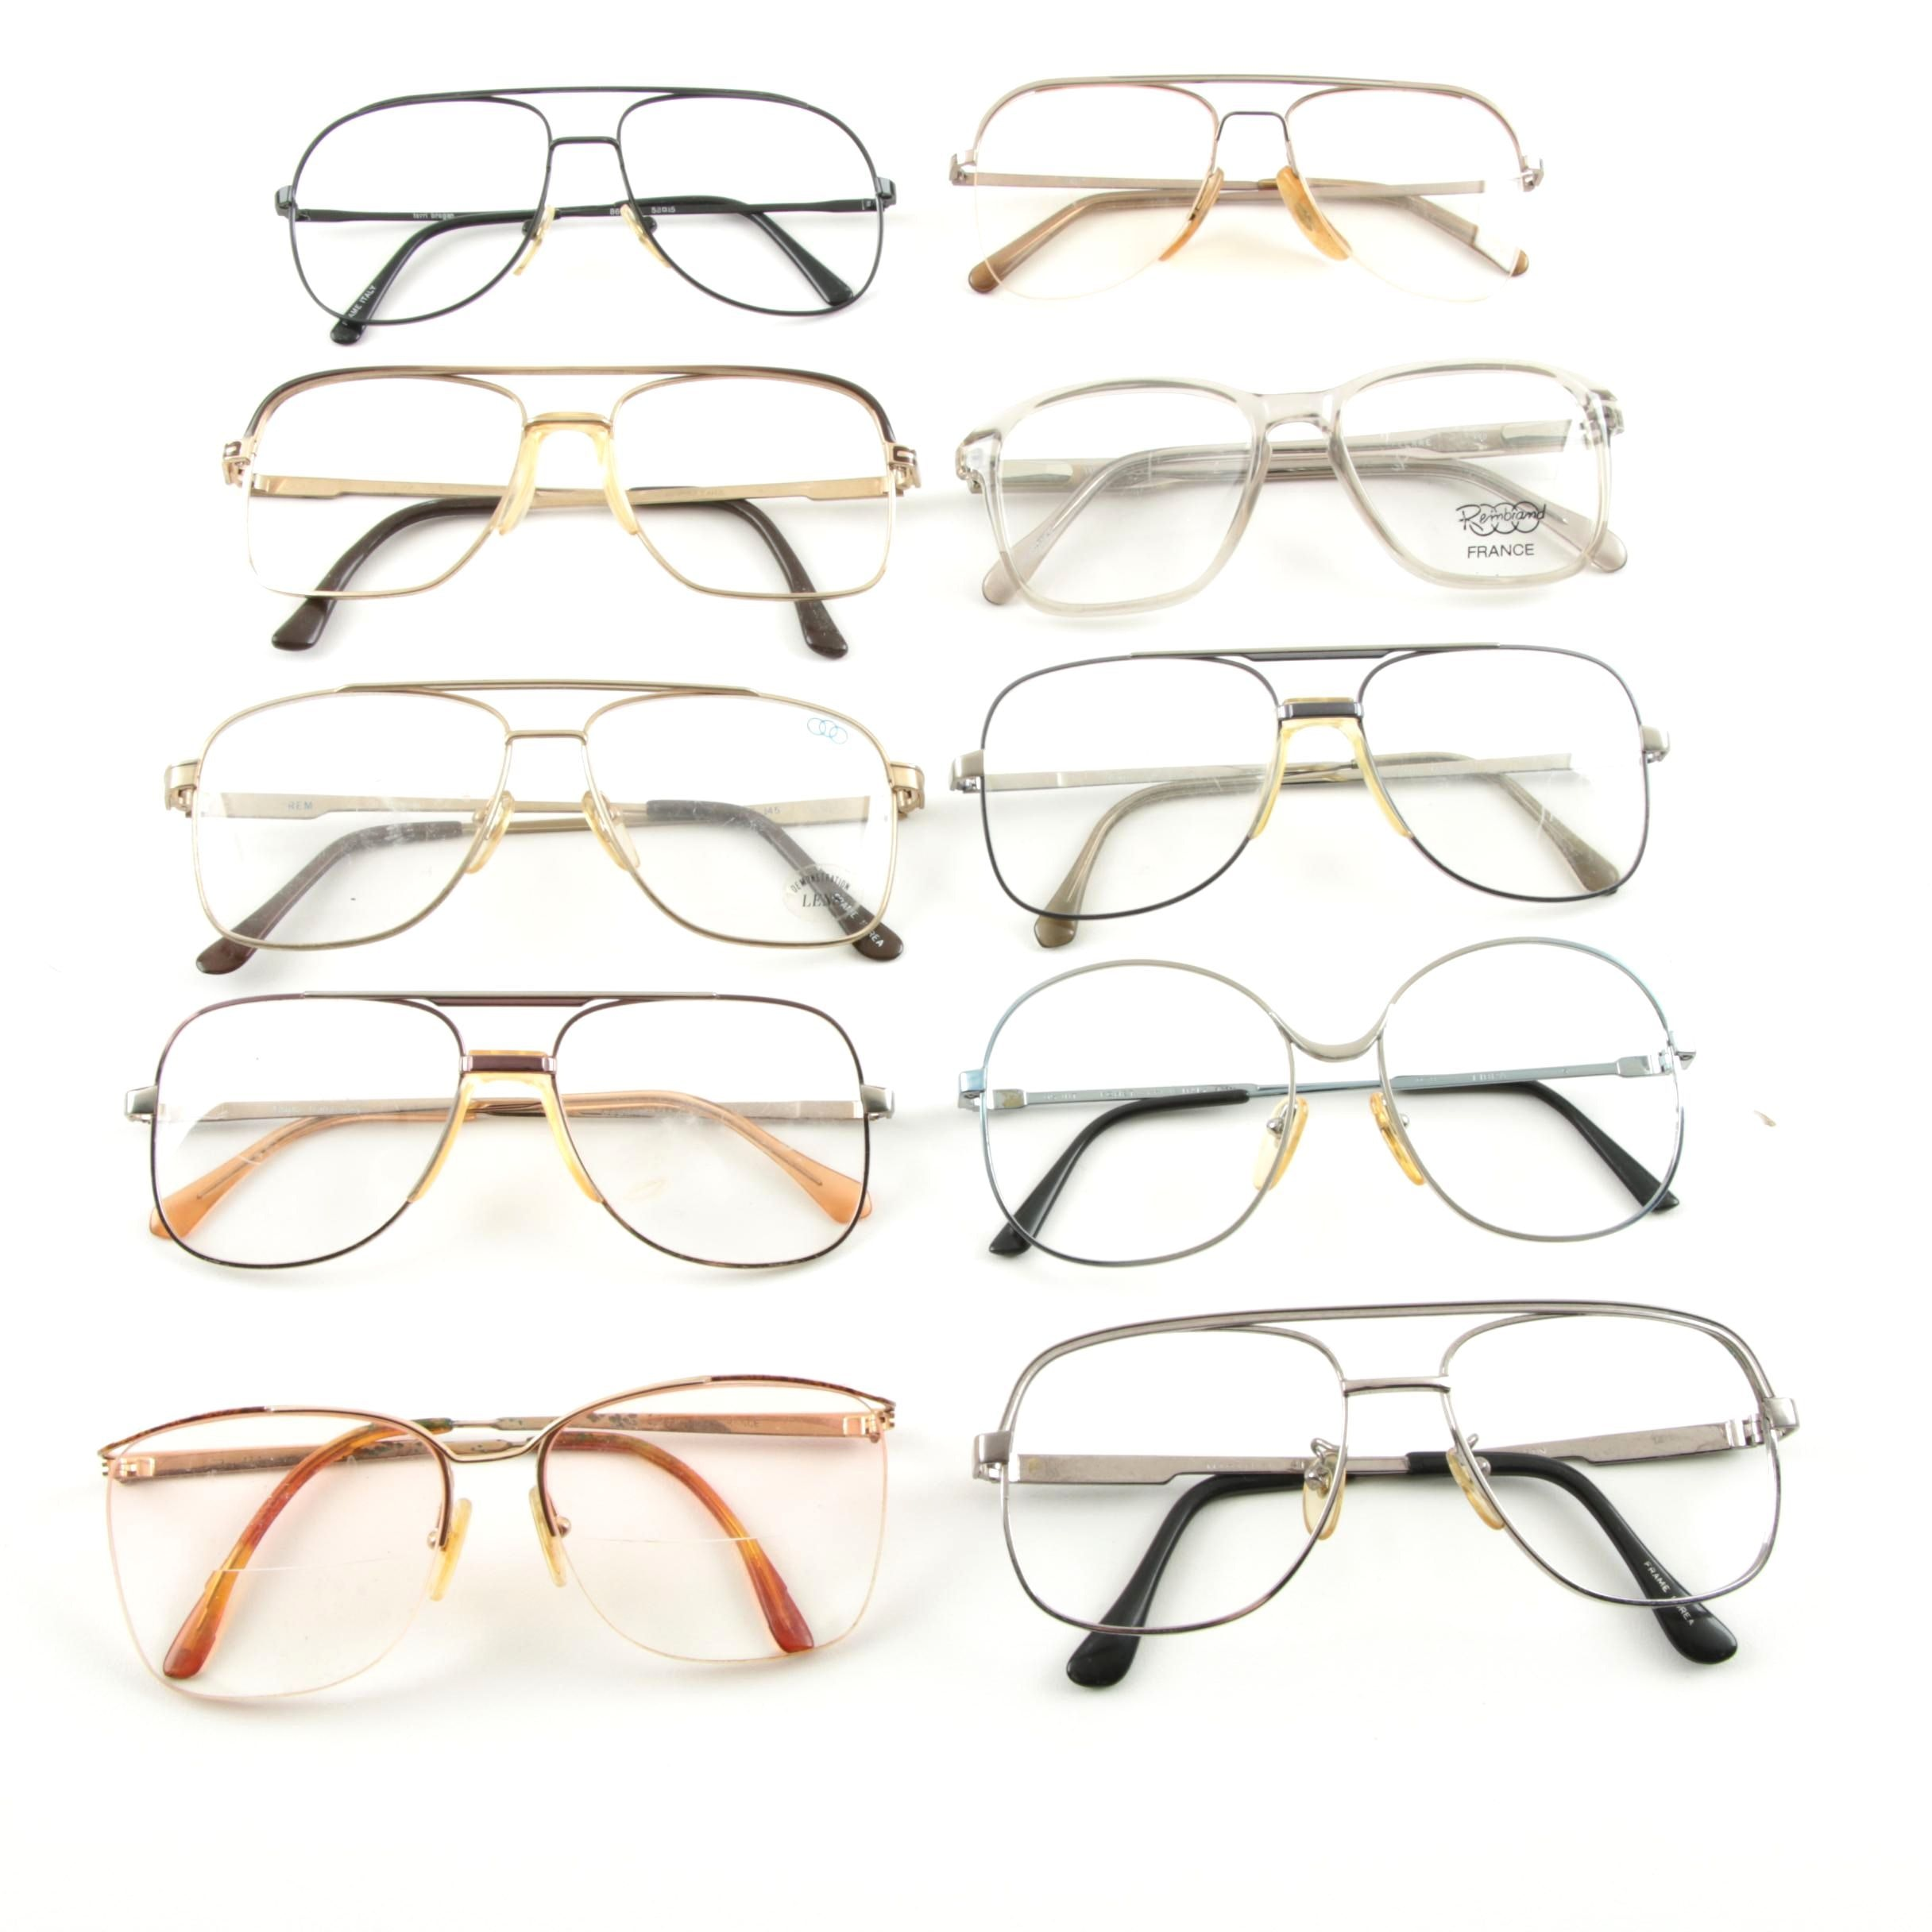 Vintage Eyeglasses, Including Rembrand France